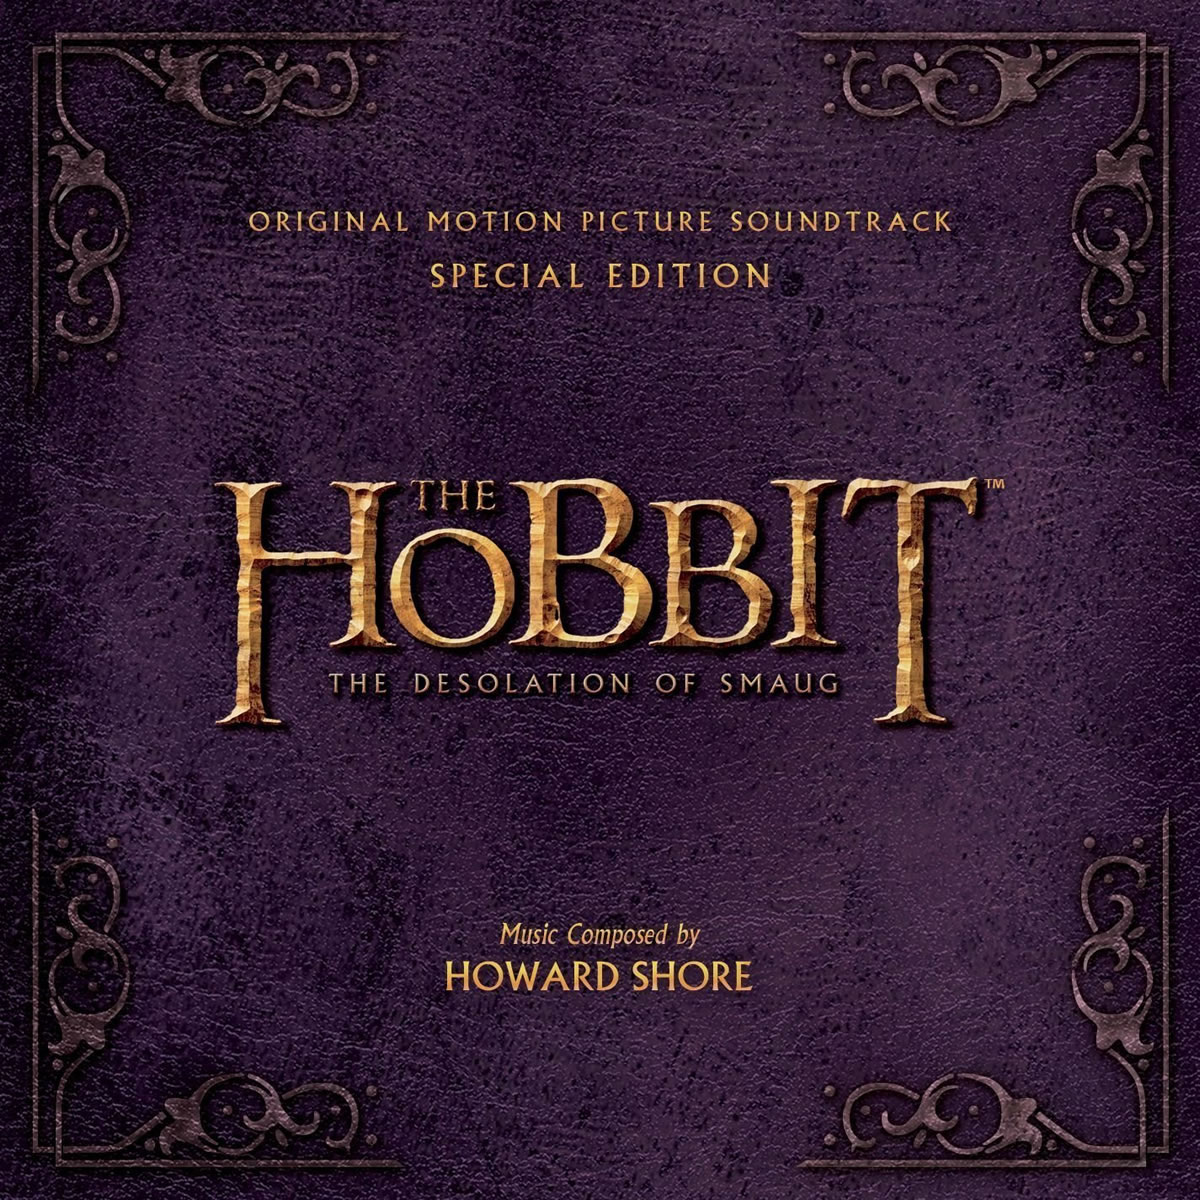 THE HOBBIT: THE DESOLATION OF SMAUG - ORIGINAL MOTION PICTURE SOUNDTRACK Special Edition (2 AUDIO CDs)